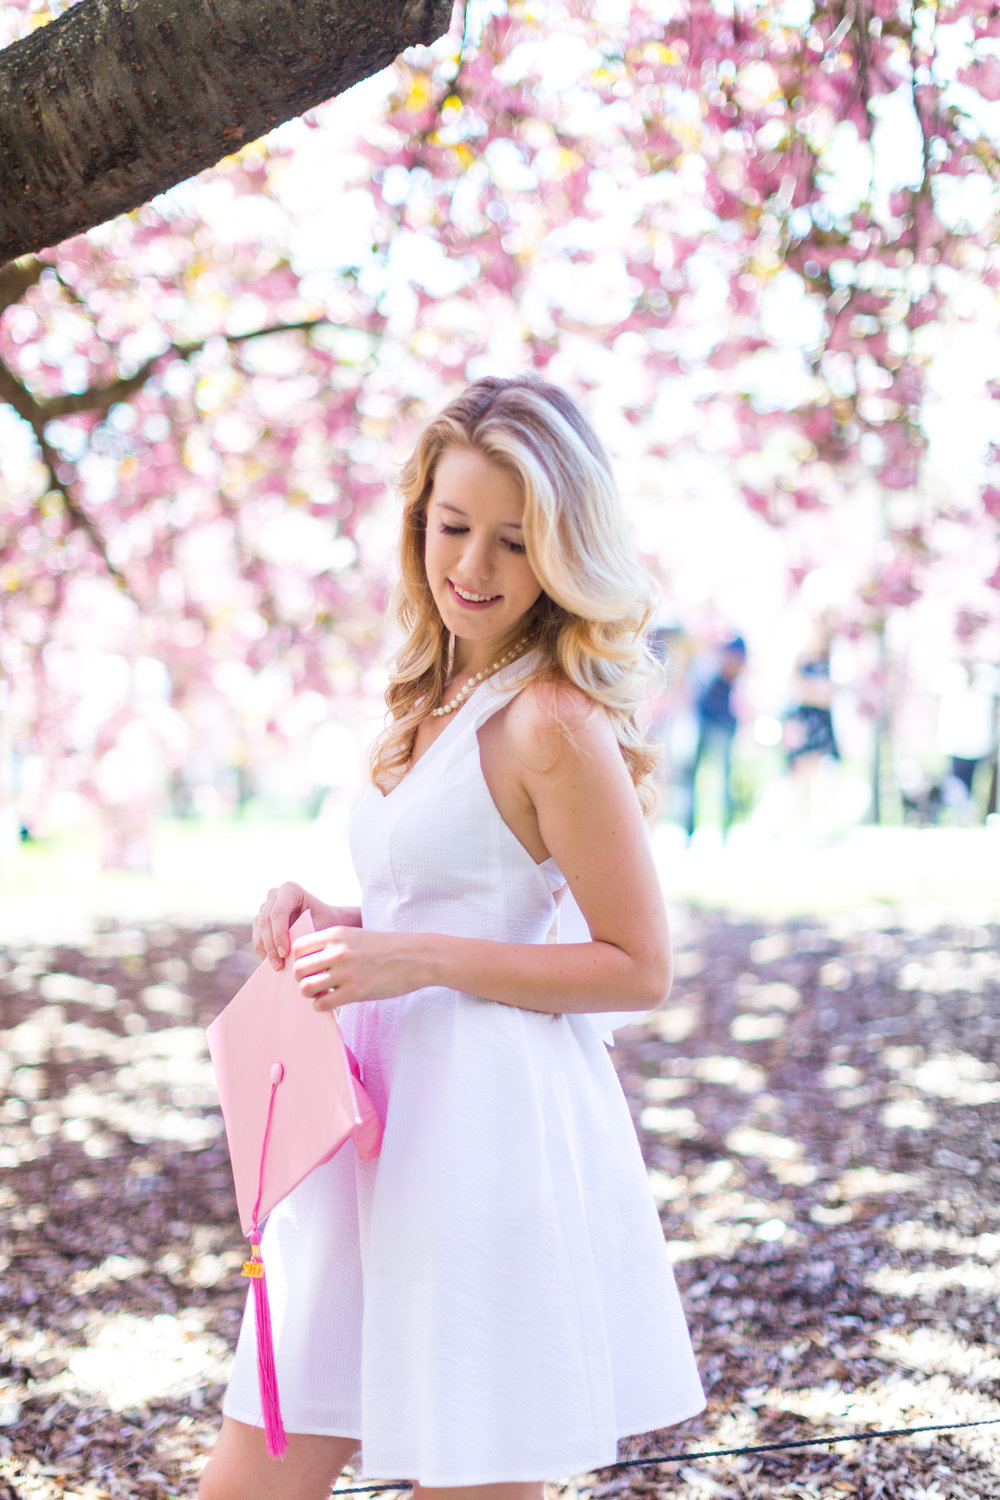 White Graduation Dress Spring Pink Cherry Blossoms NYC-23.jpg